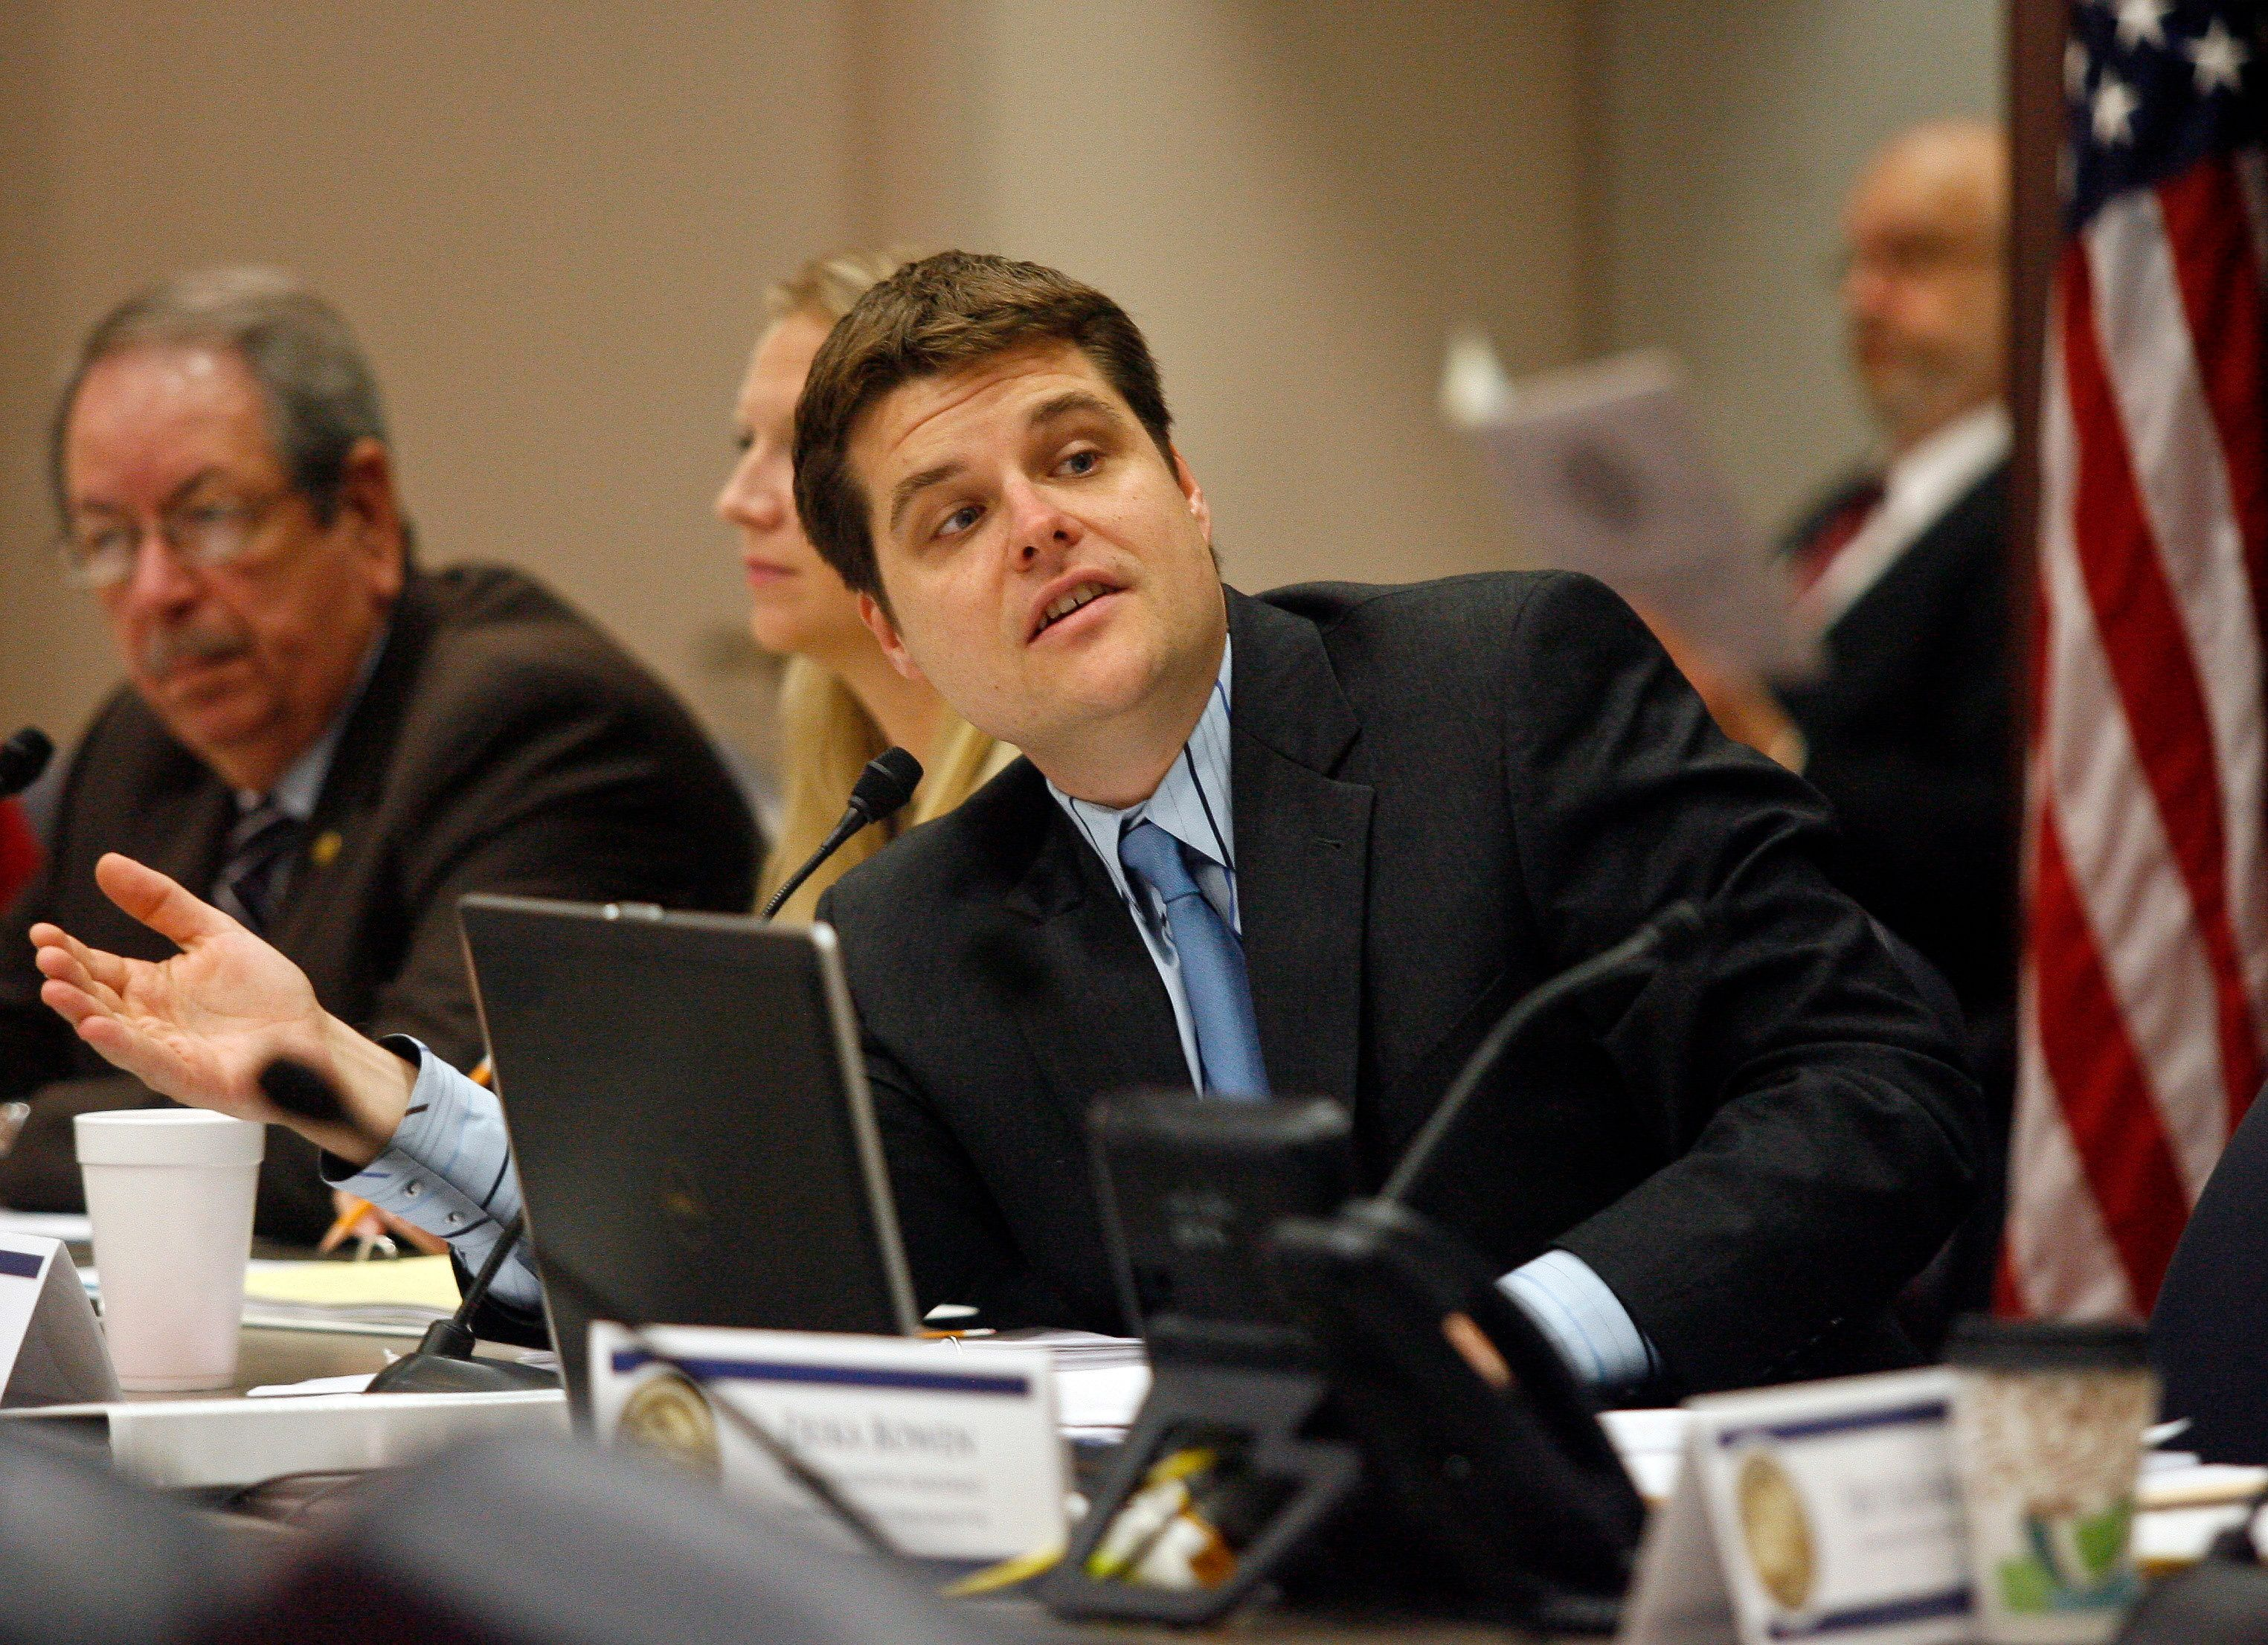 Rep. Matt Gaetz, R-Fort Walton Beach answers a question during discussion of House Bill 843 - Cannabis at a Criminal Justice Subcommittee meeting in the House Office Building Wednesday, March 5, 2014 in Tallahassee, Fla. The Senate will be taking up a related bill called SB 1030-Medical-grade Marijuana and Cannabis. (AP Photo/Phil Sears)